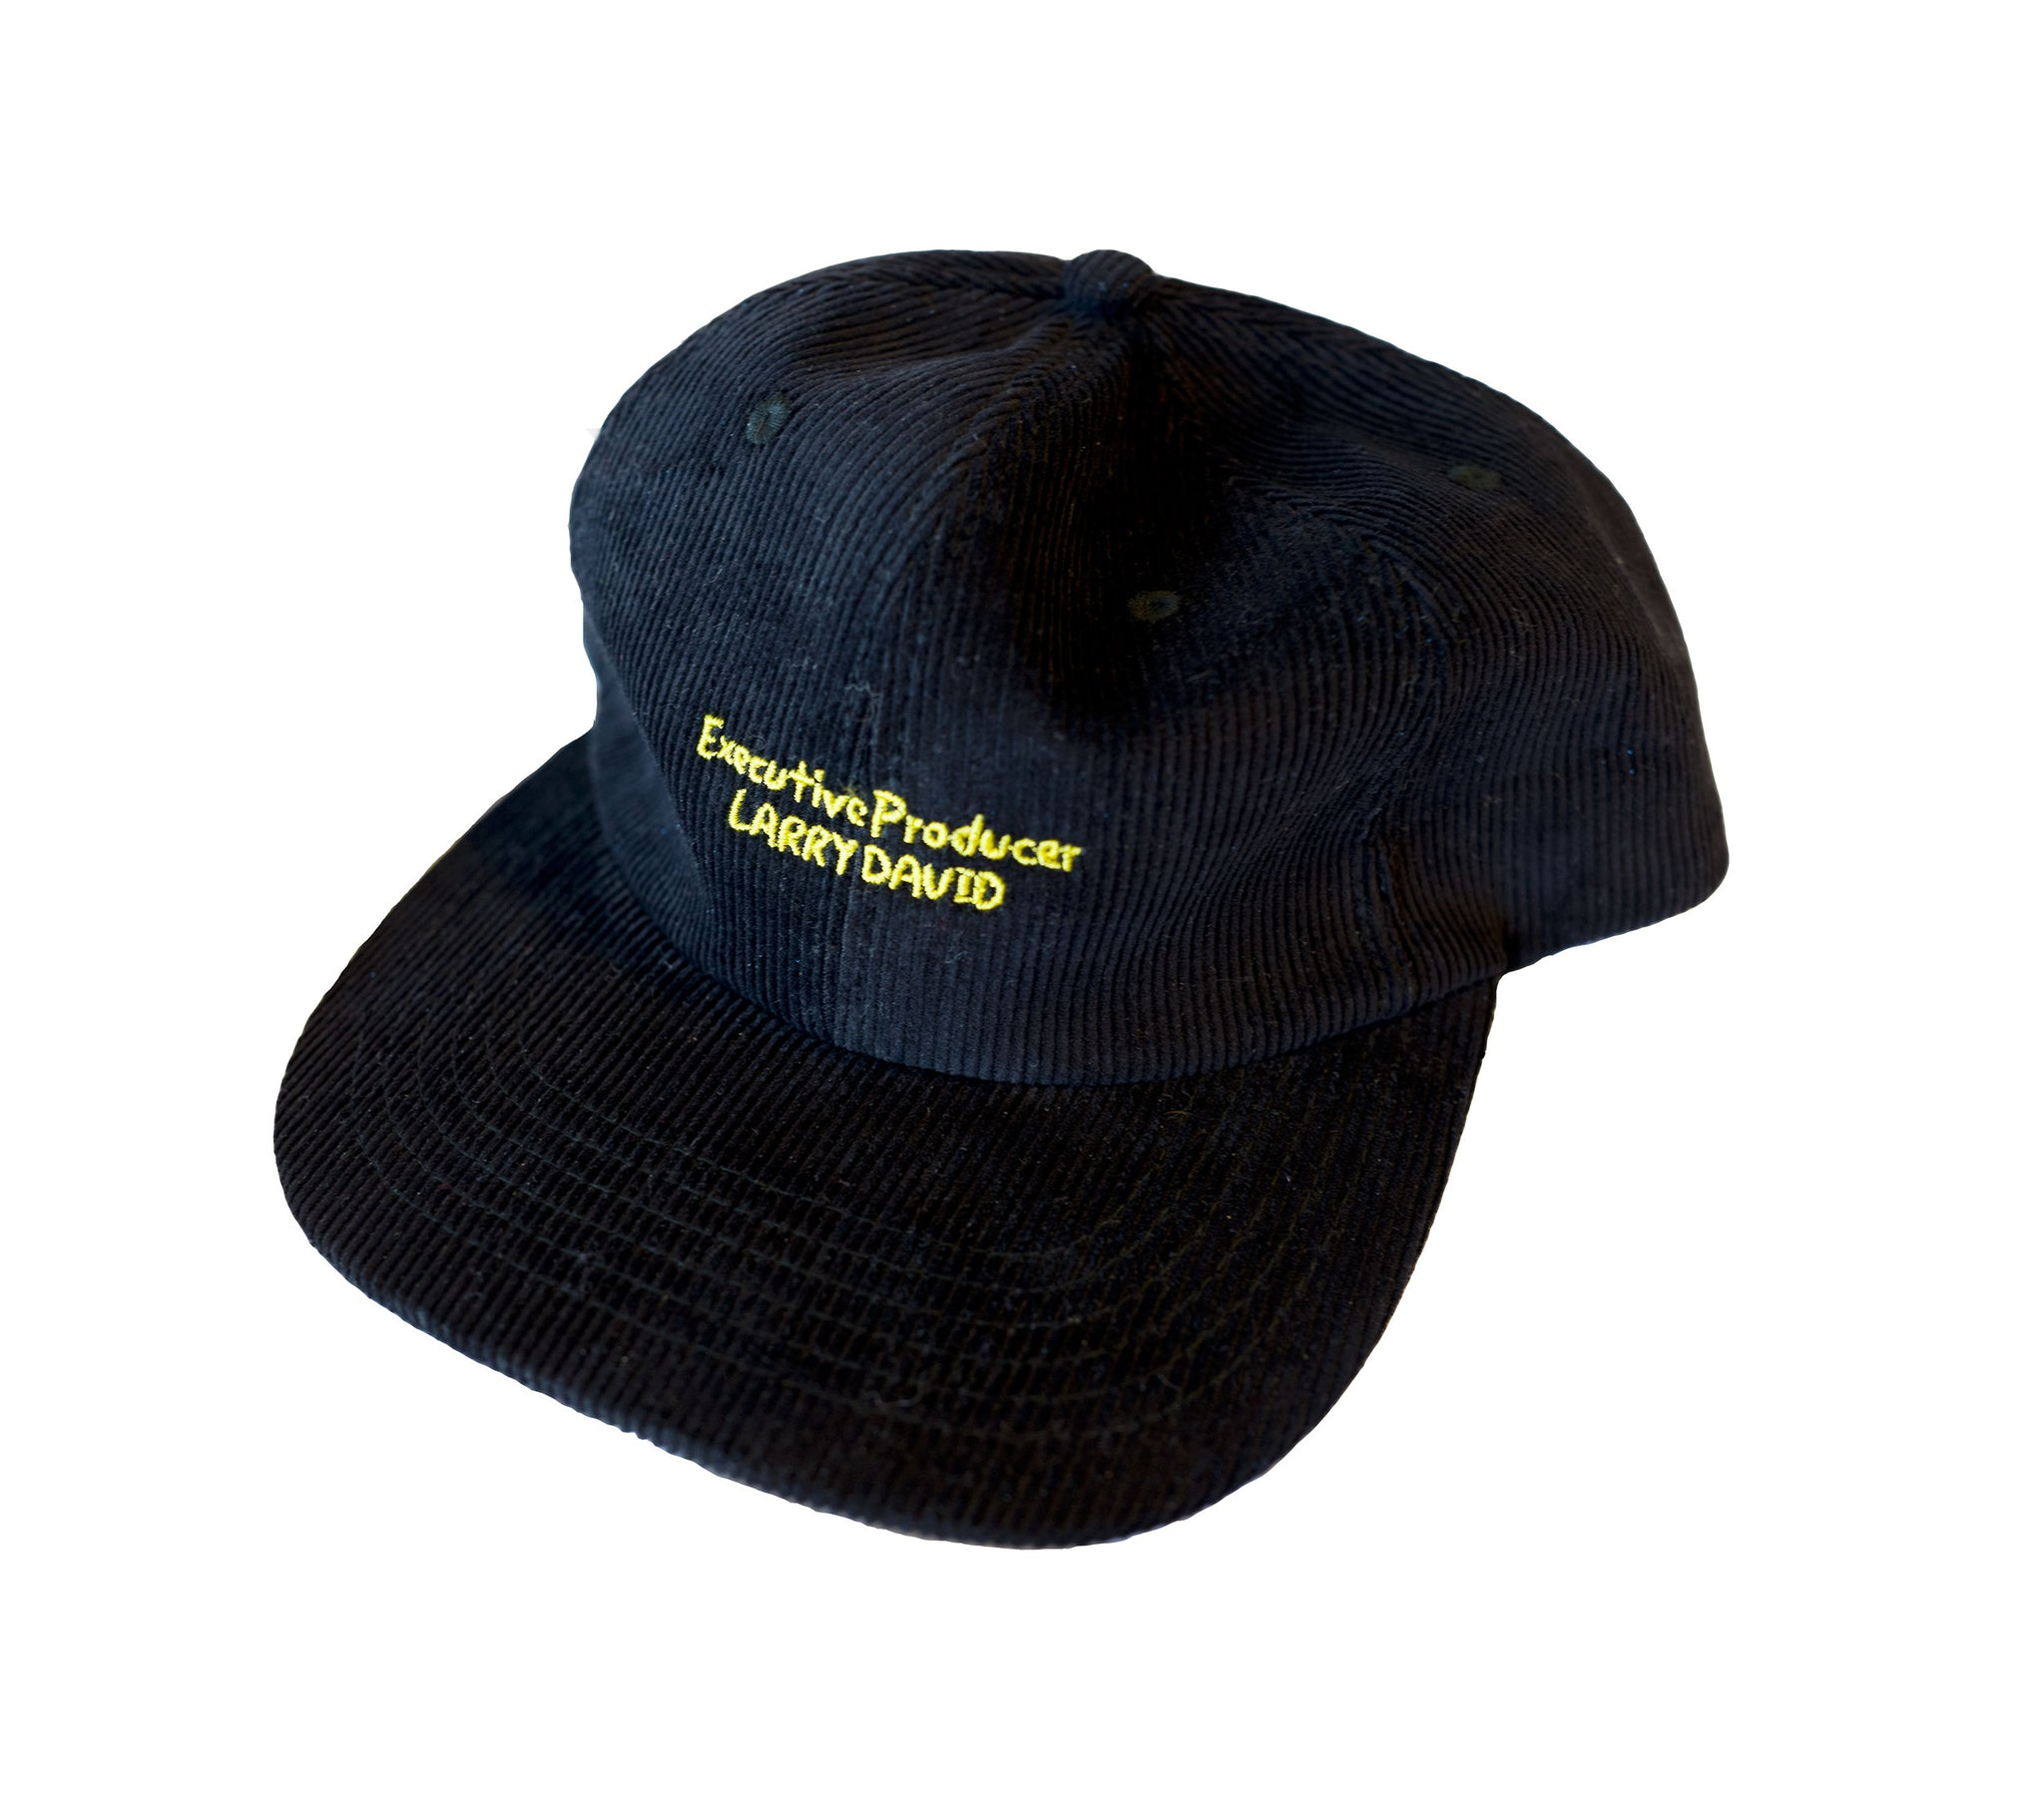 The Executive Hat